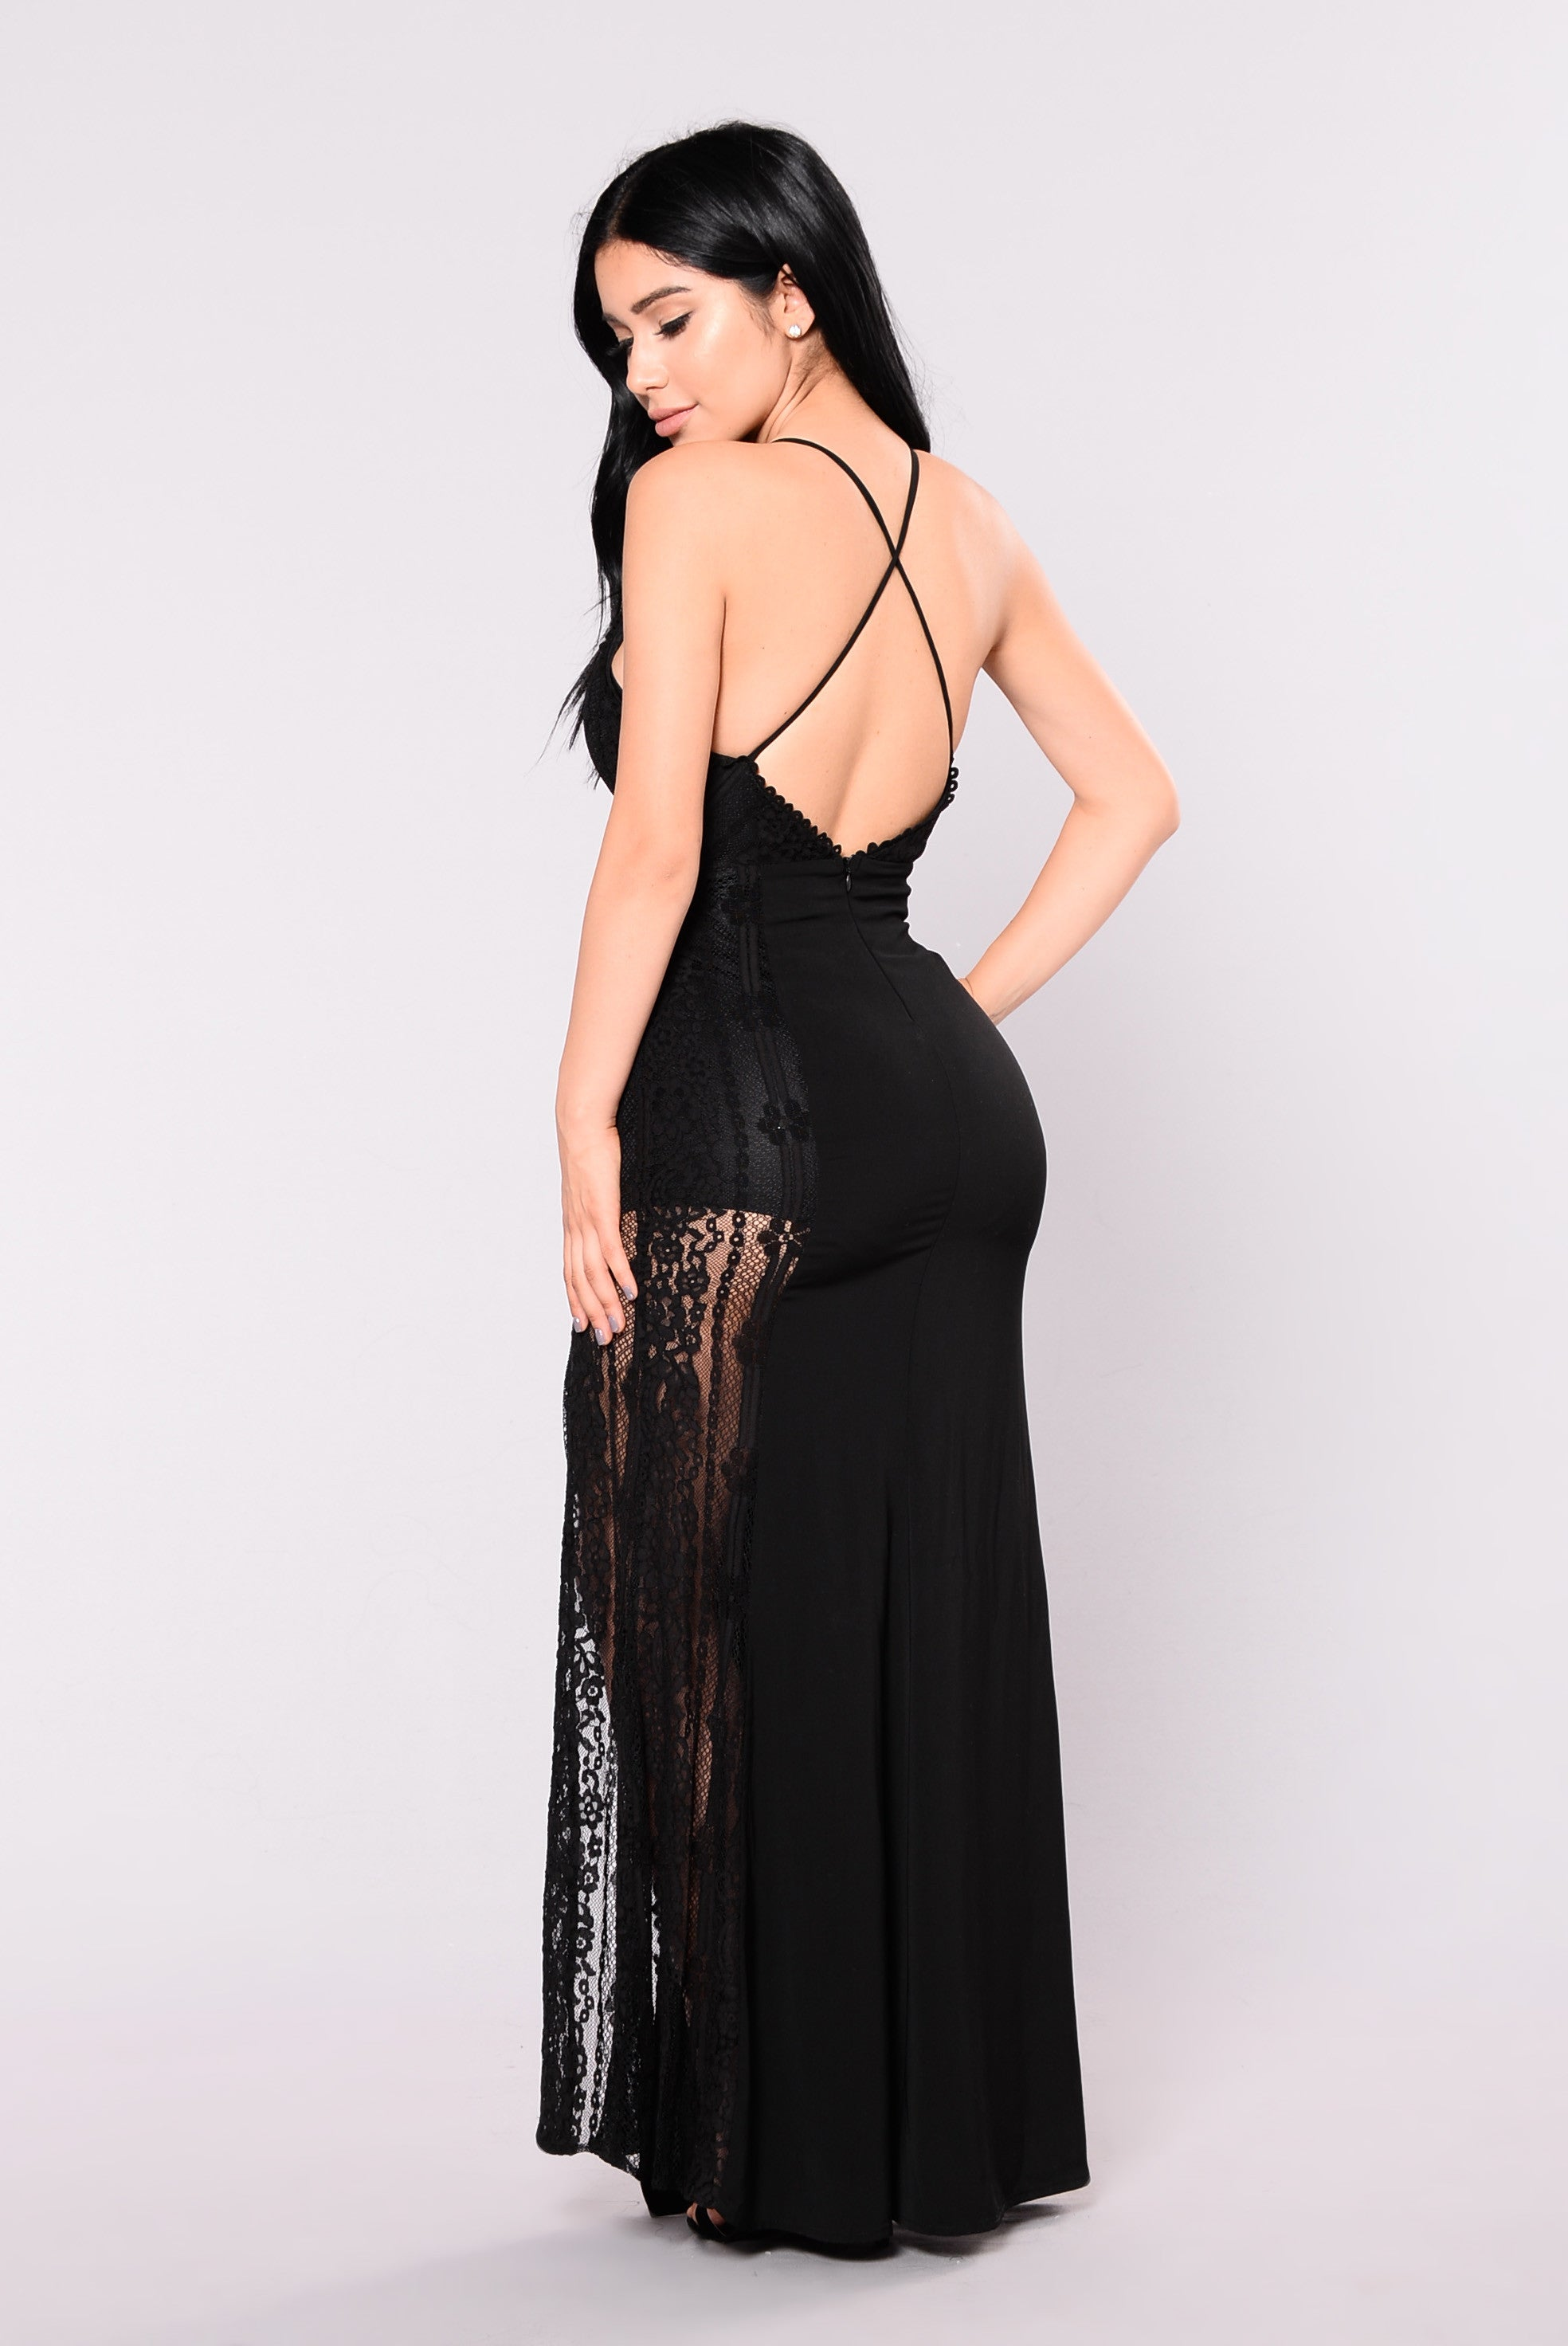 Dreaming In Lace Dress - Black